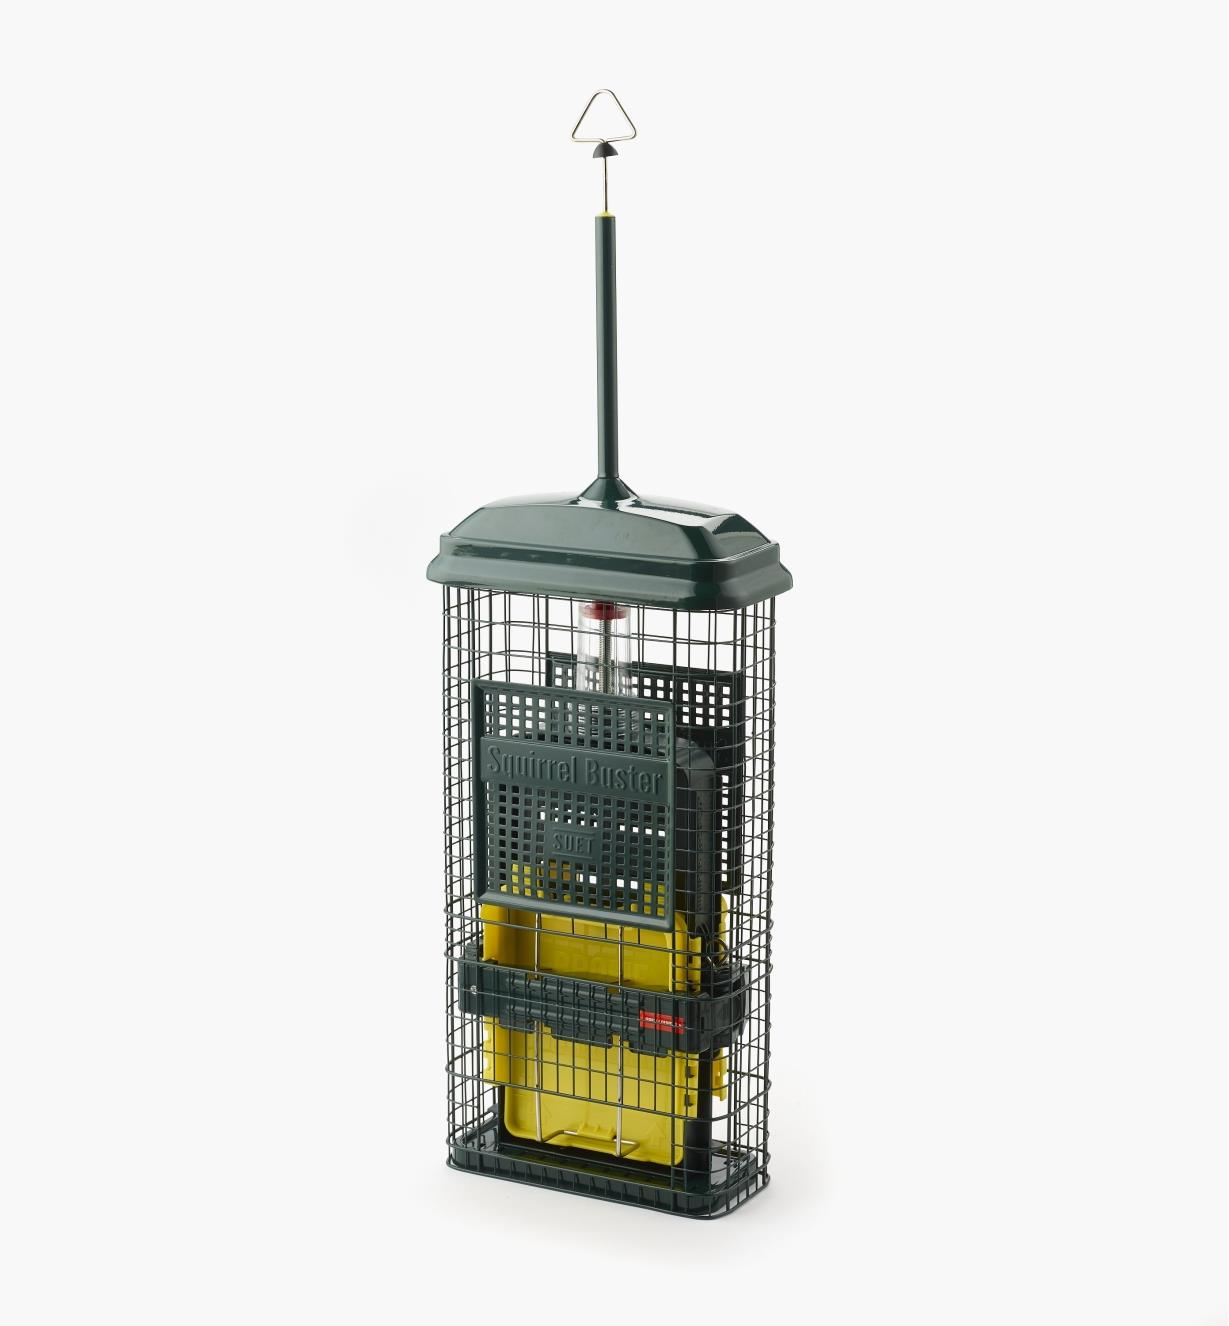 AG340 - Squirrel Buster Suet Feeder